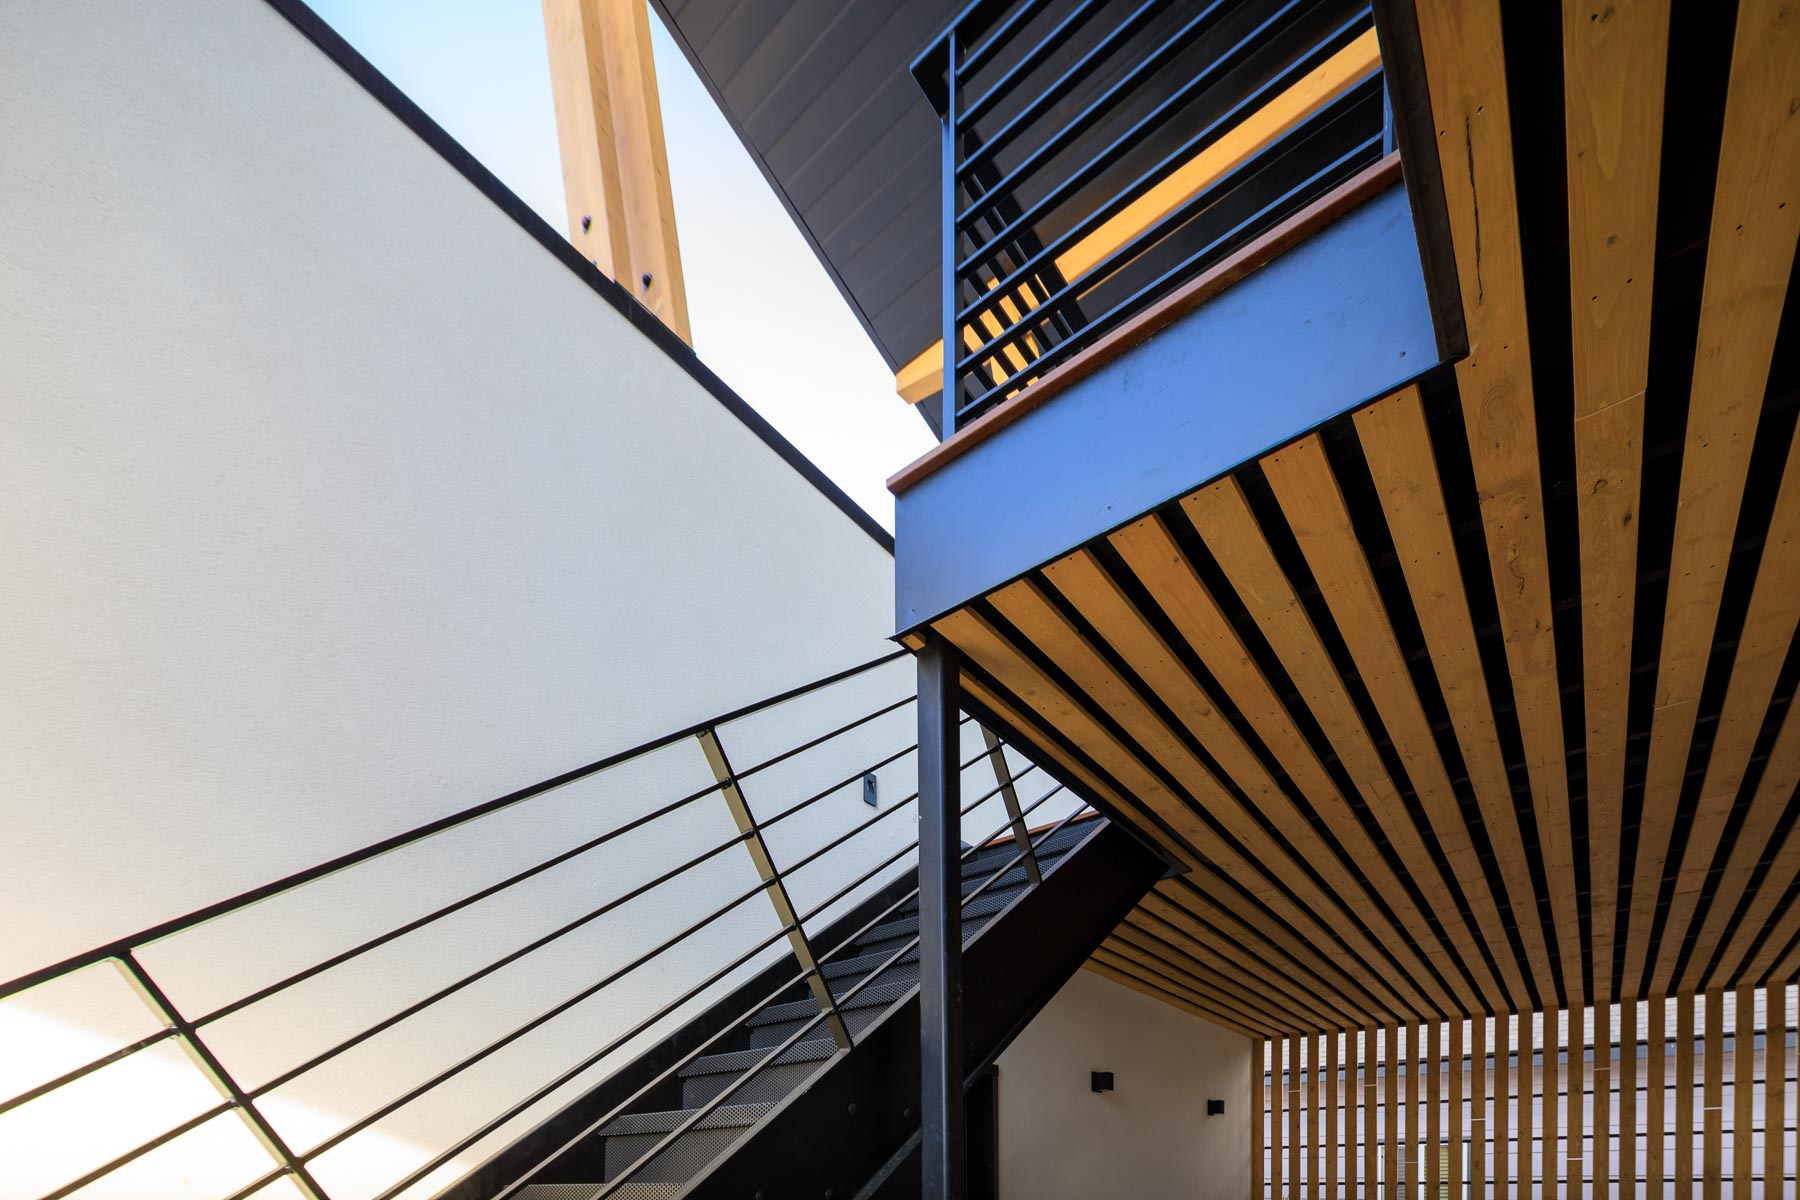 Steel, Concrete & Wood—Three Critical, Weather-Resistant Design Elements That Will Bring Your Modern Home To Life